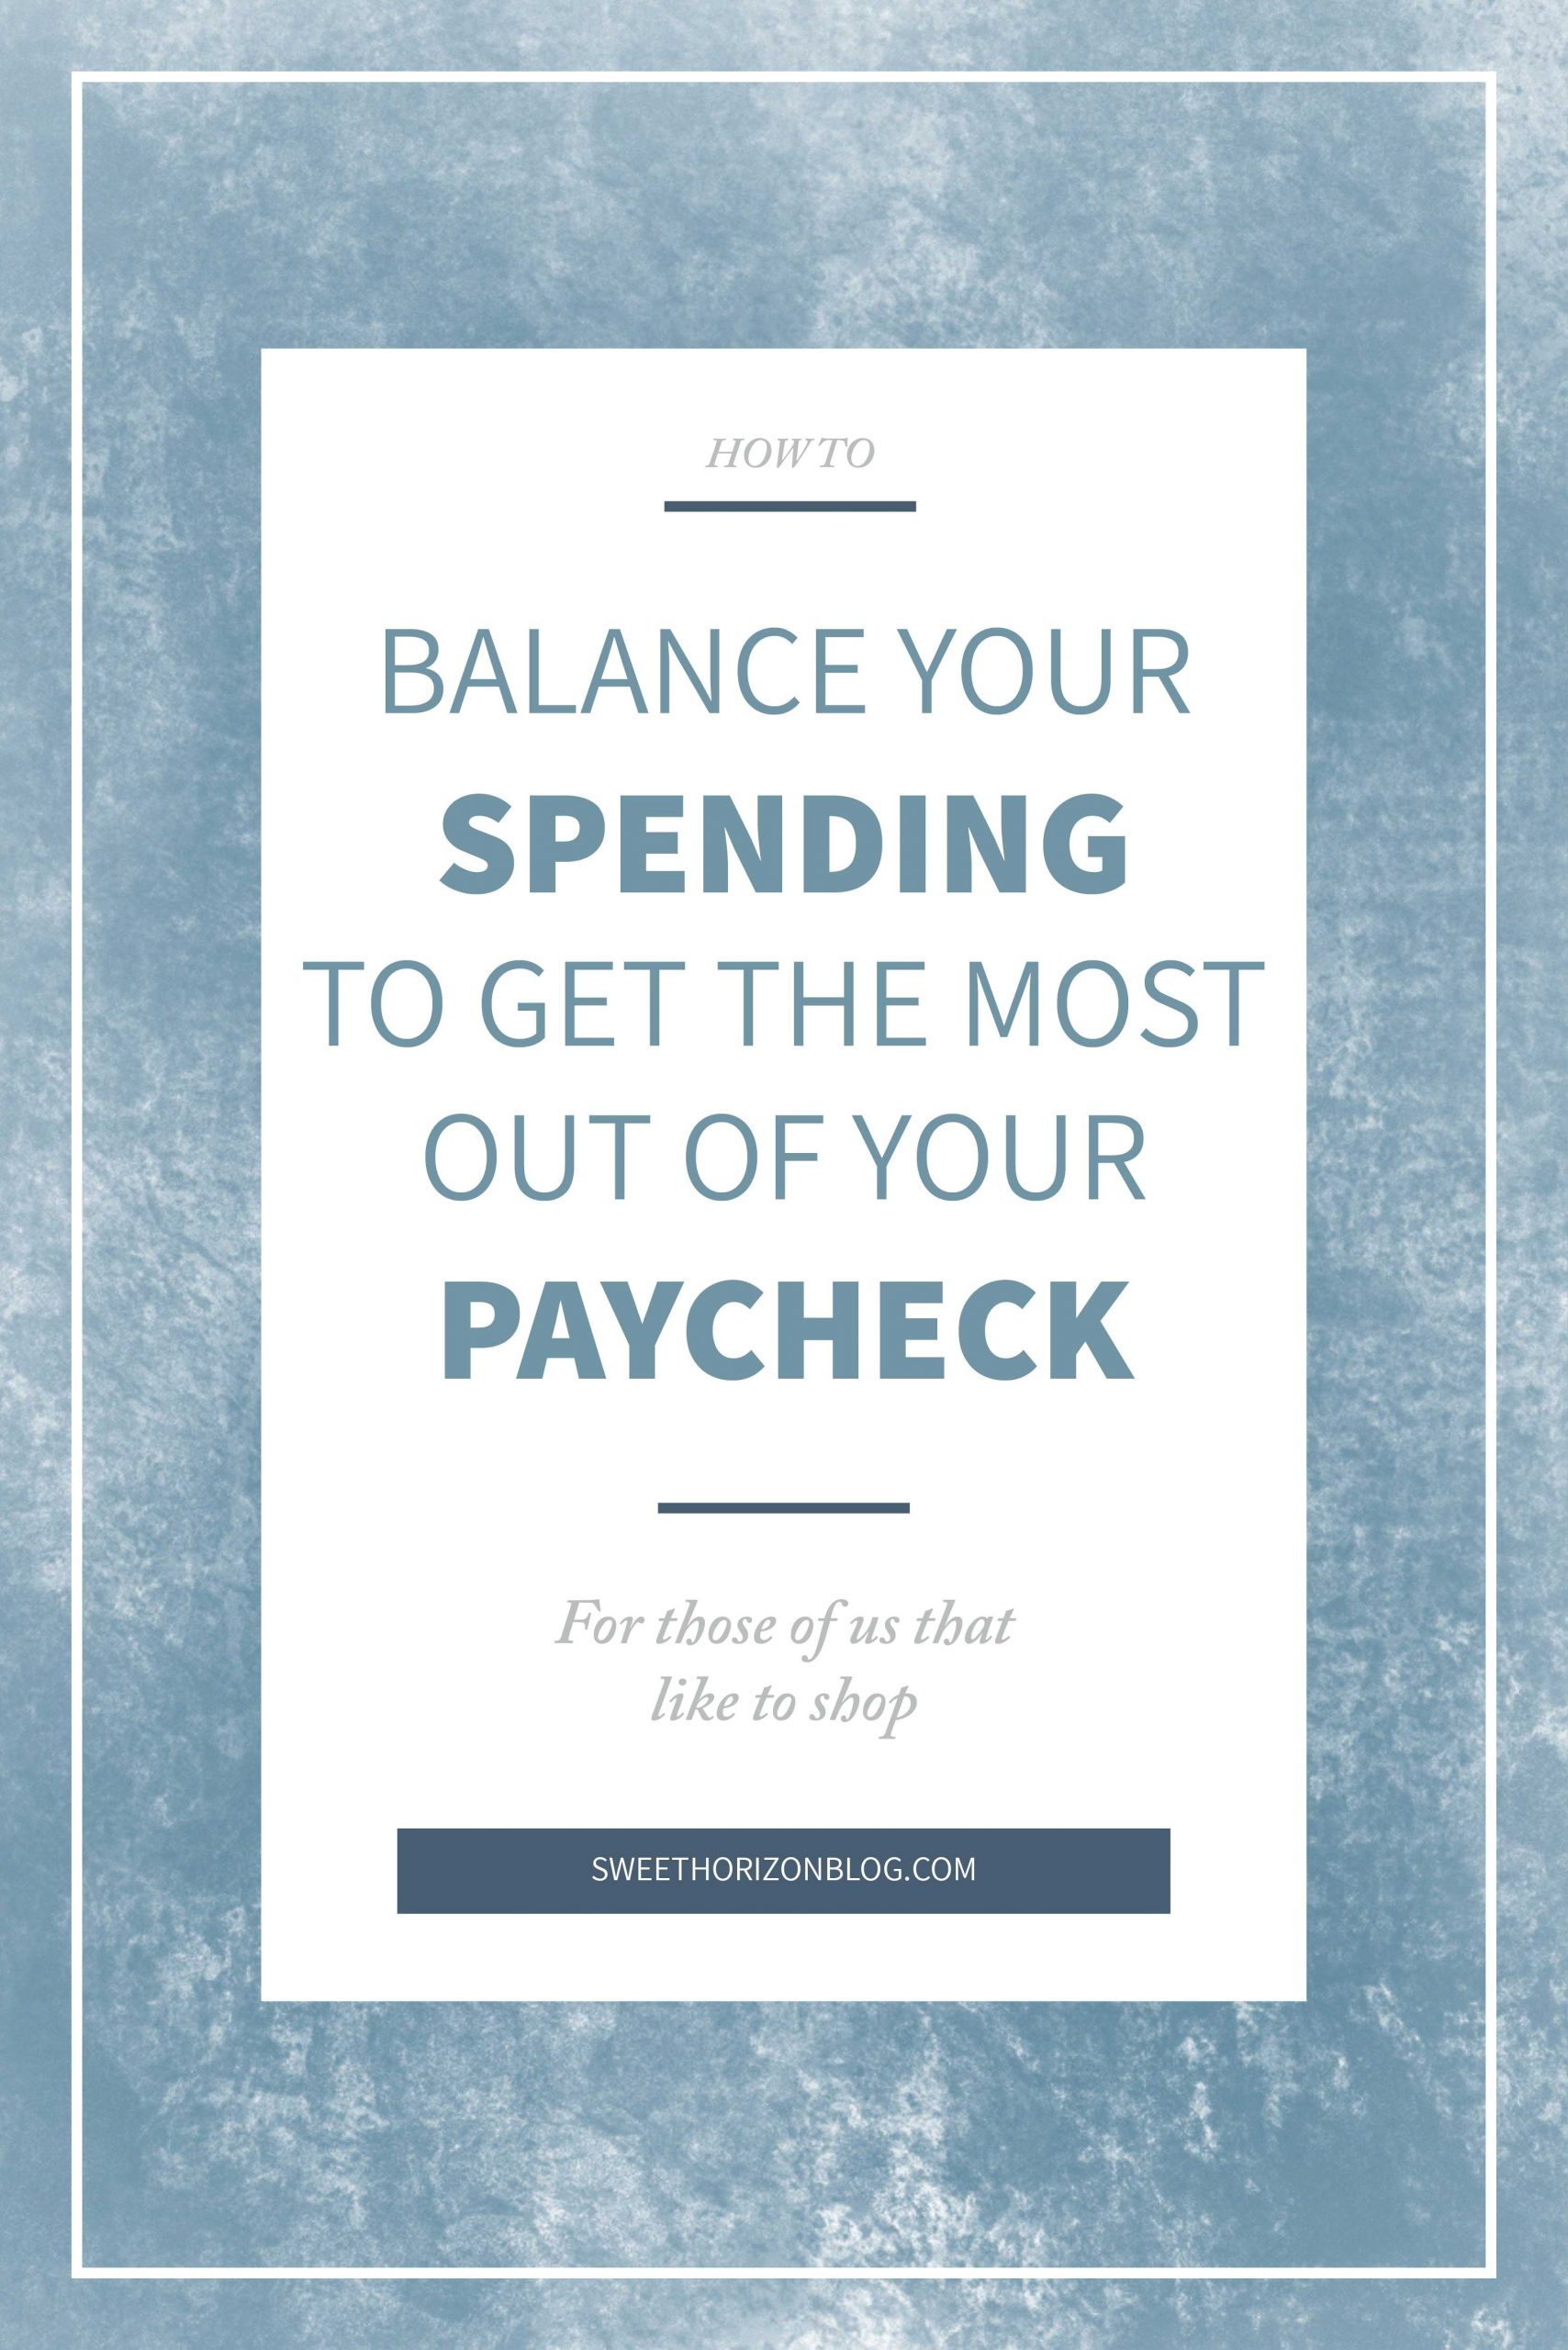 How to Balance Your Spending to Get the Most Out of Your Paycheck from www.sweethorizonblog.com